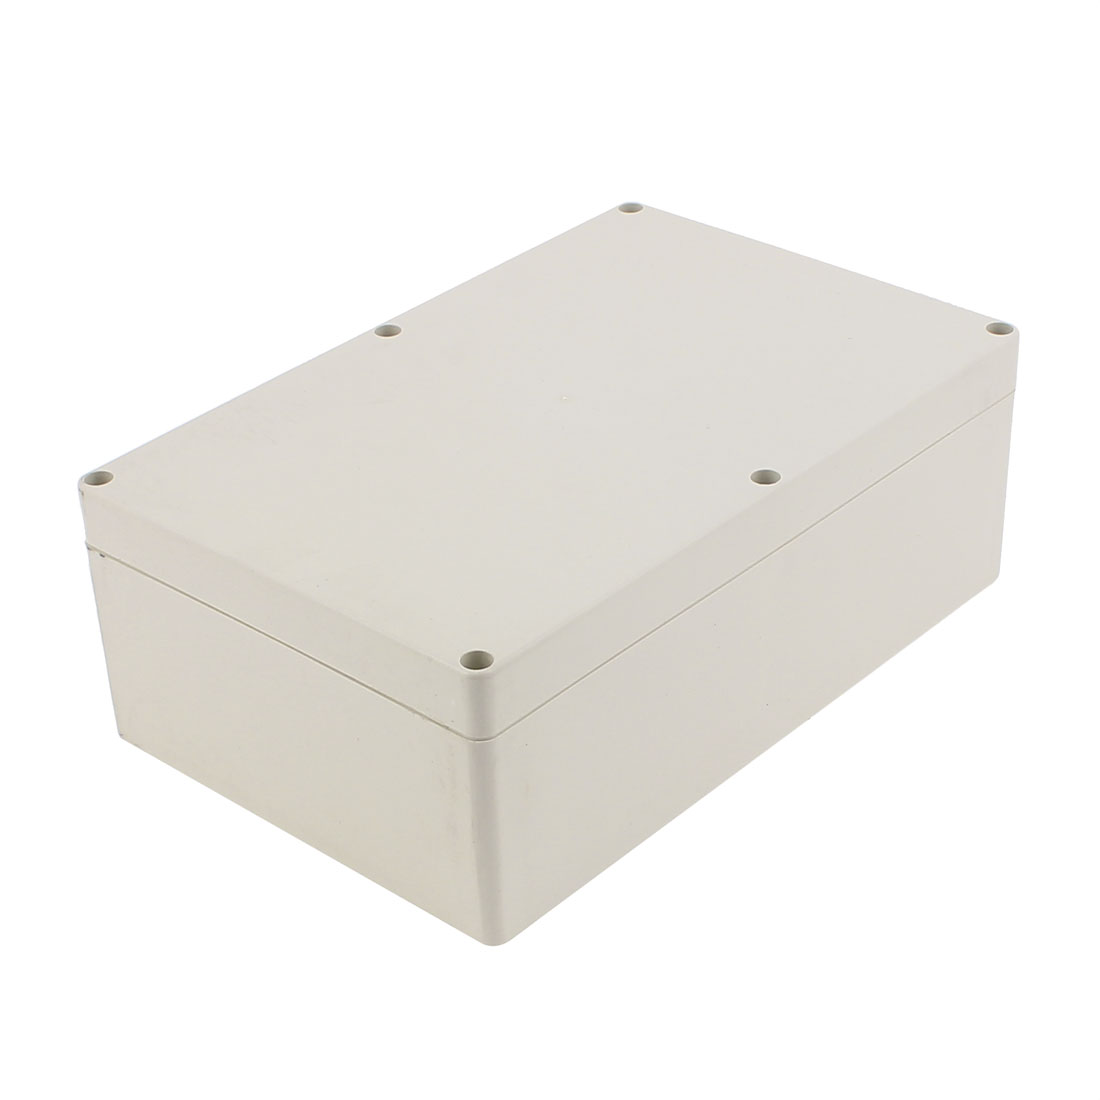 230 x 150 x 85mm Dustproof IP65 Junction Box Terminal Connecting Enclosure